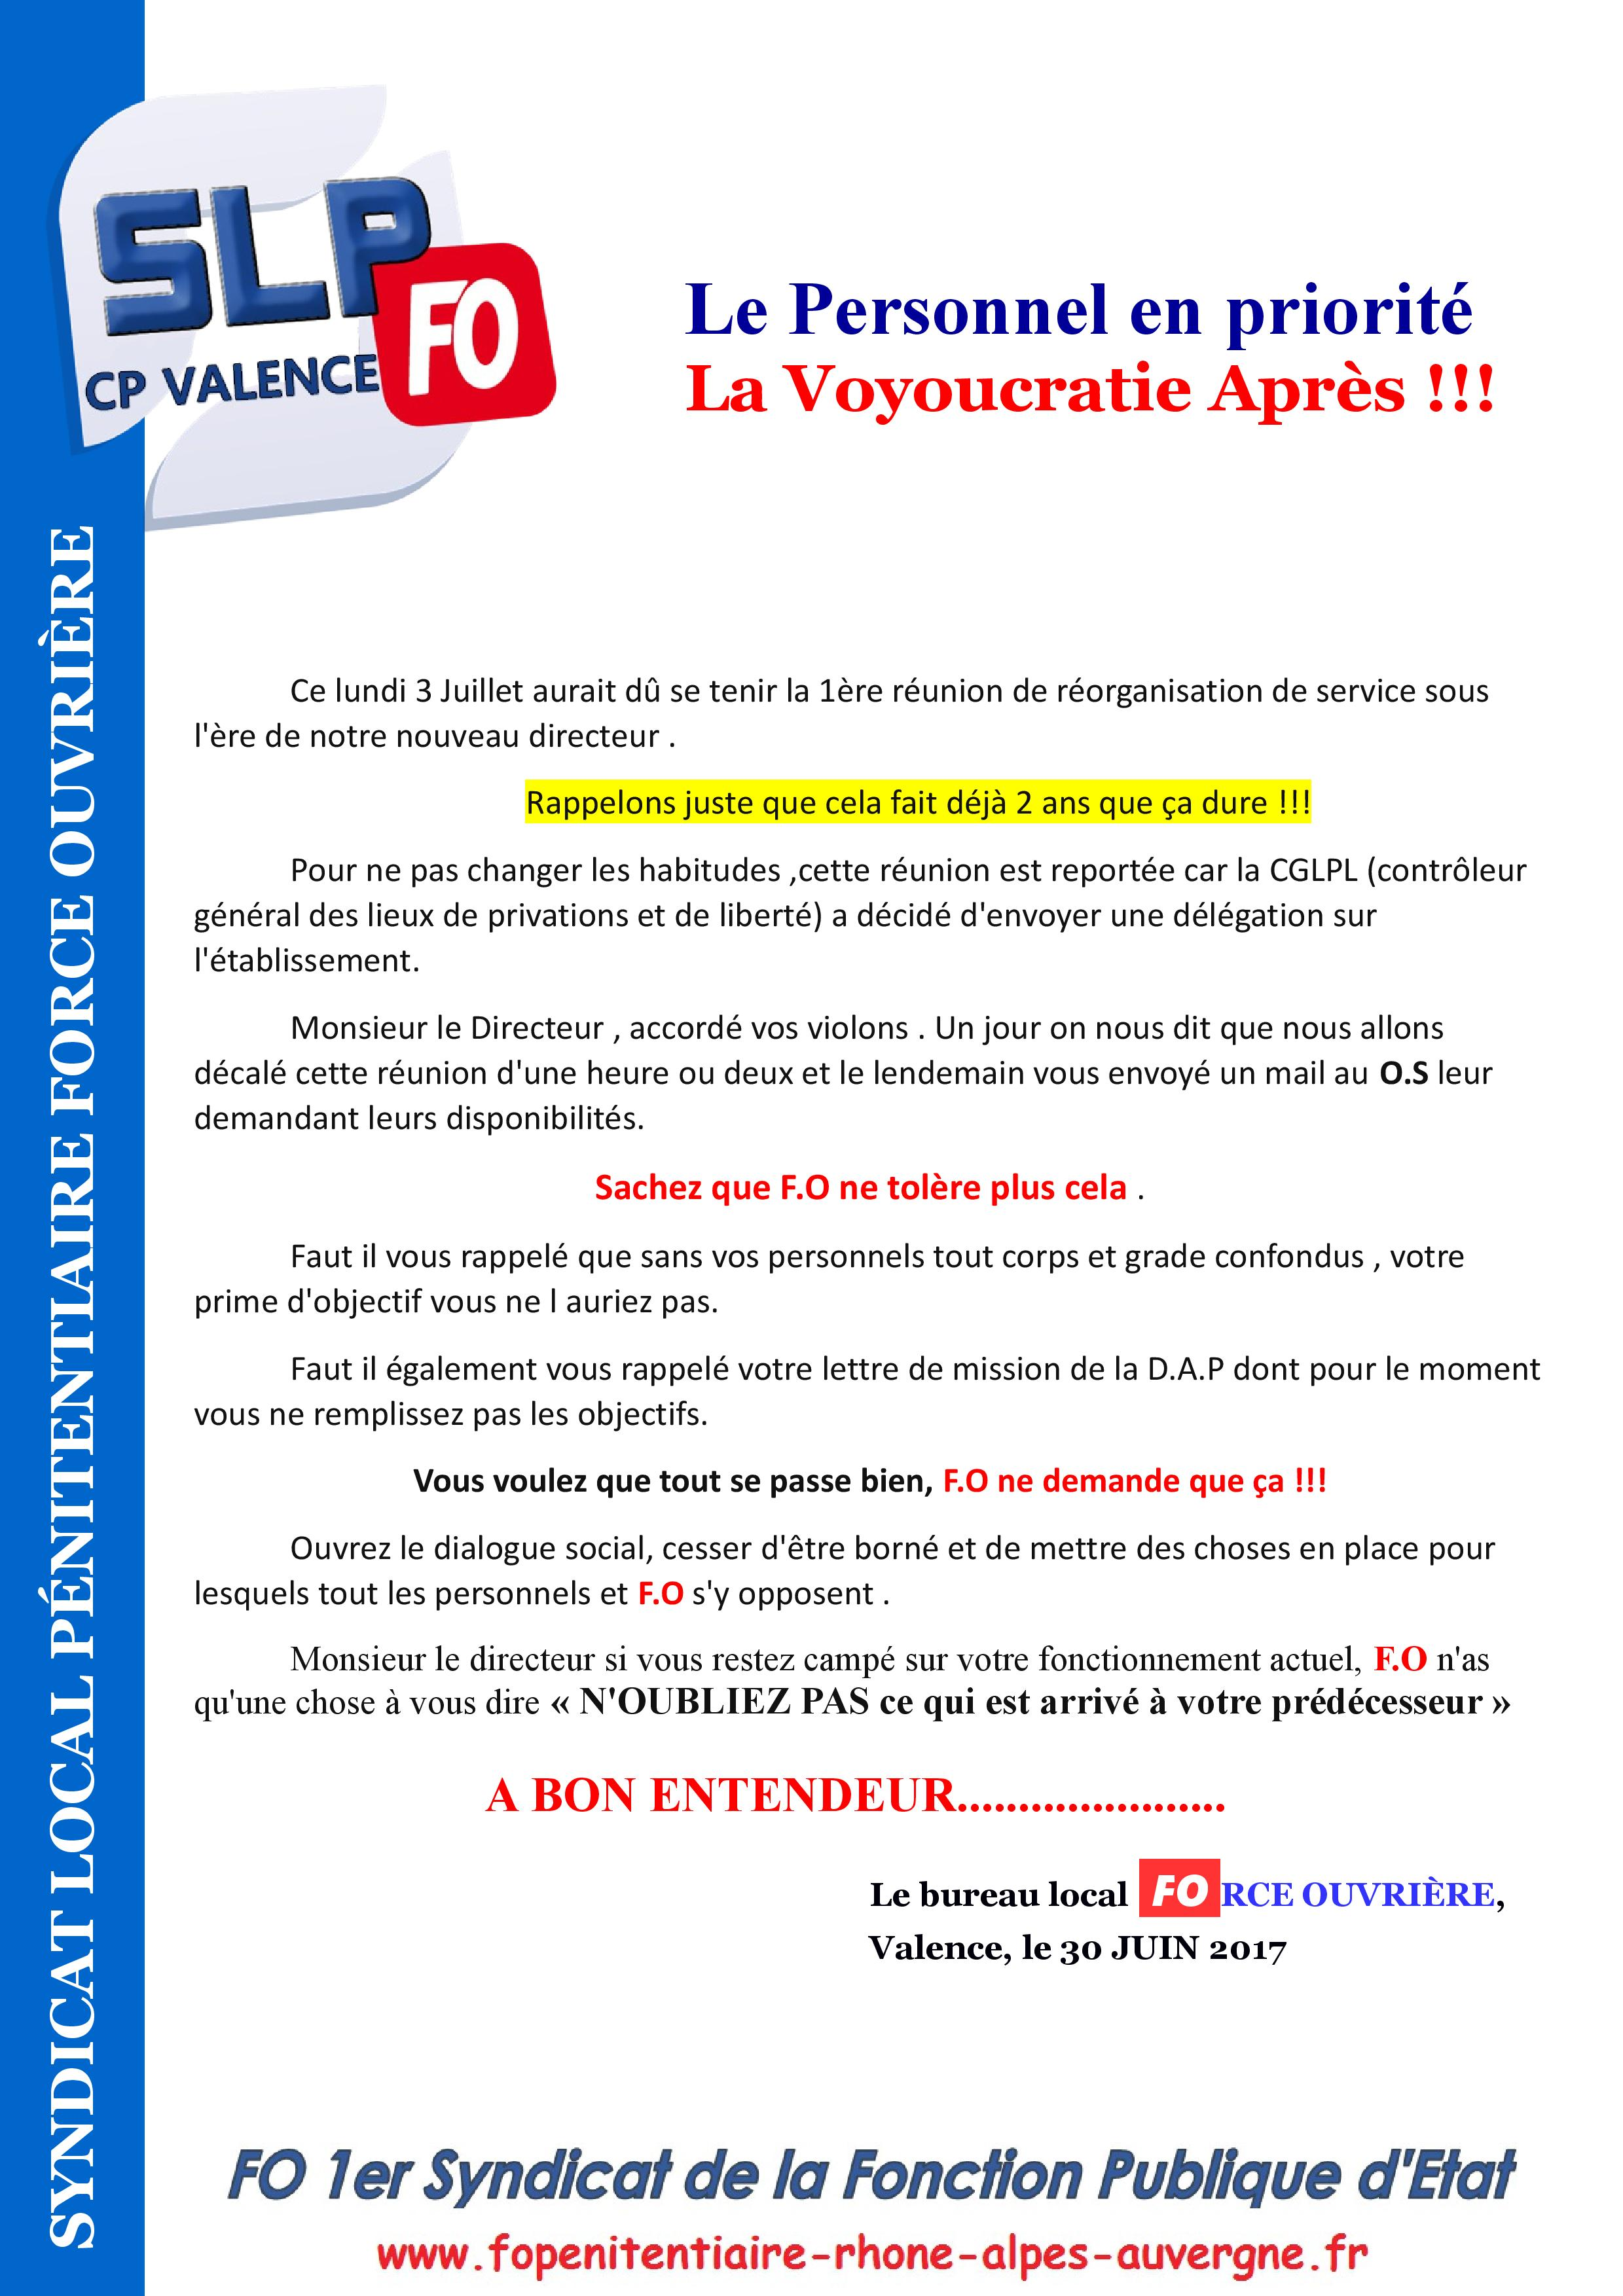 Grilles indiciaires 2017 grilles indiciaires 2017 - Adjoint administratif ere classe grille indiciaire ...